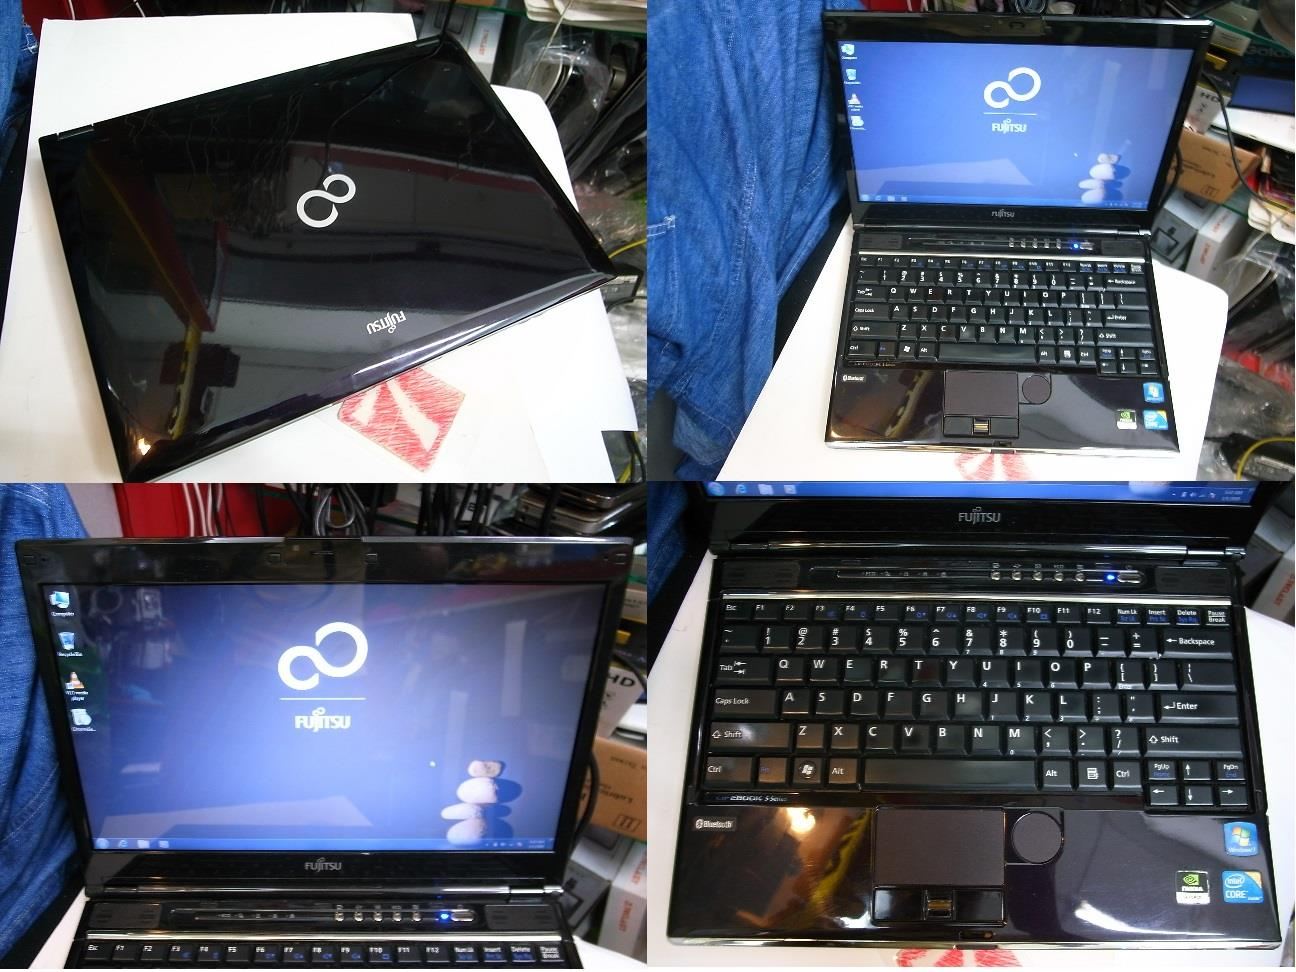 Fujitsu LifeBook SH560 i5 2.4GHz Nvidia 13 INCH Laptop Notebook Rm850